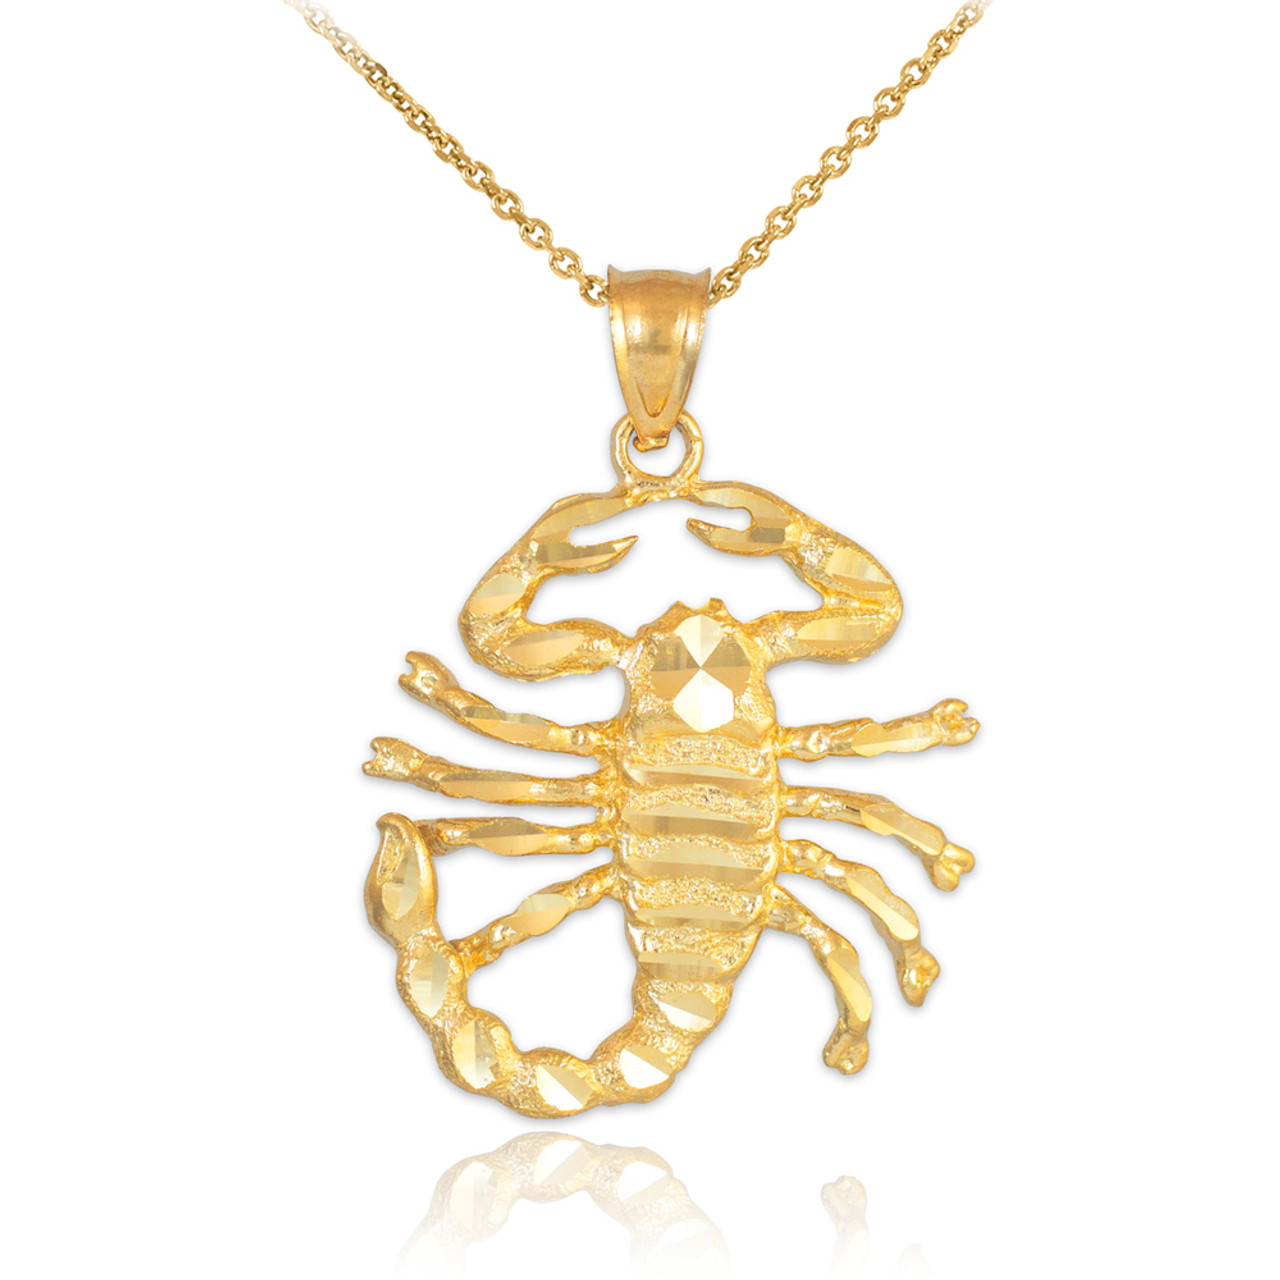 Gold scorpion pendant gold scorpion pendant necklace mozeypictures Images